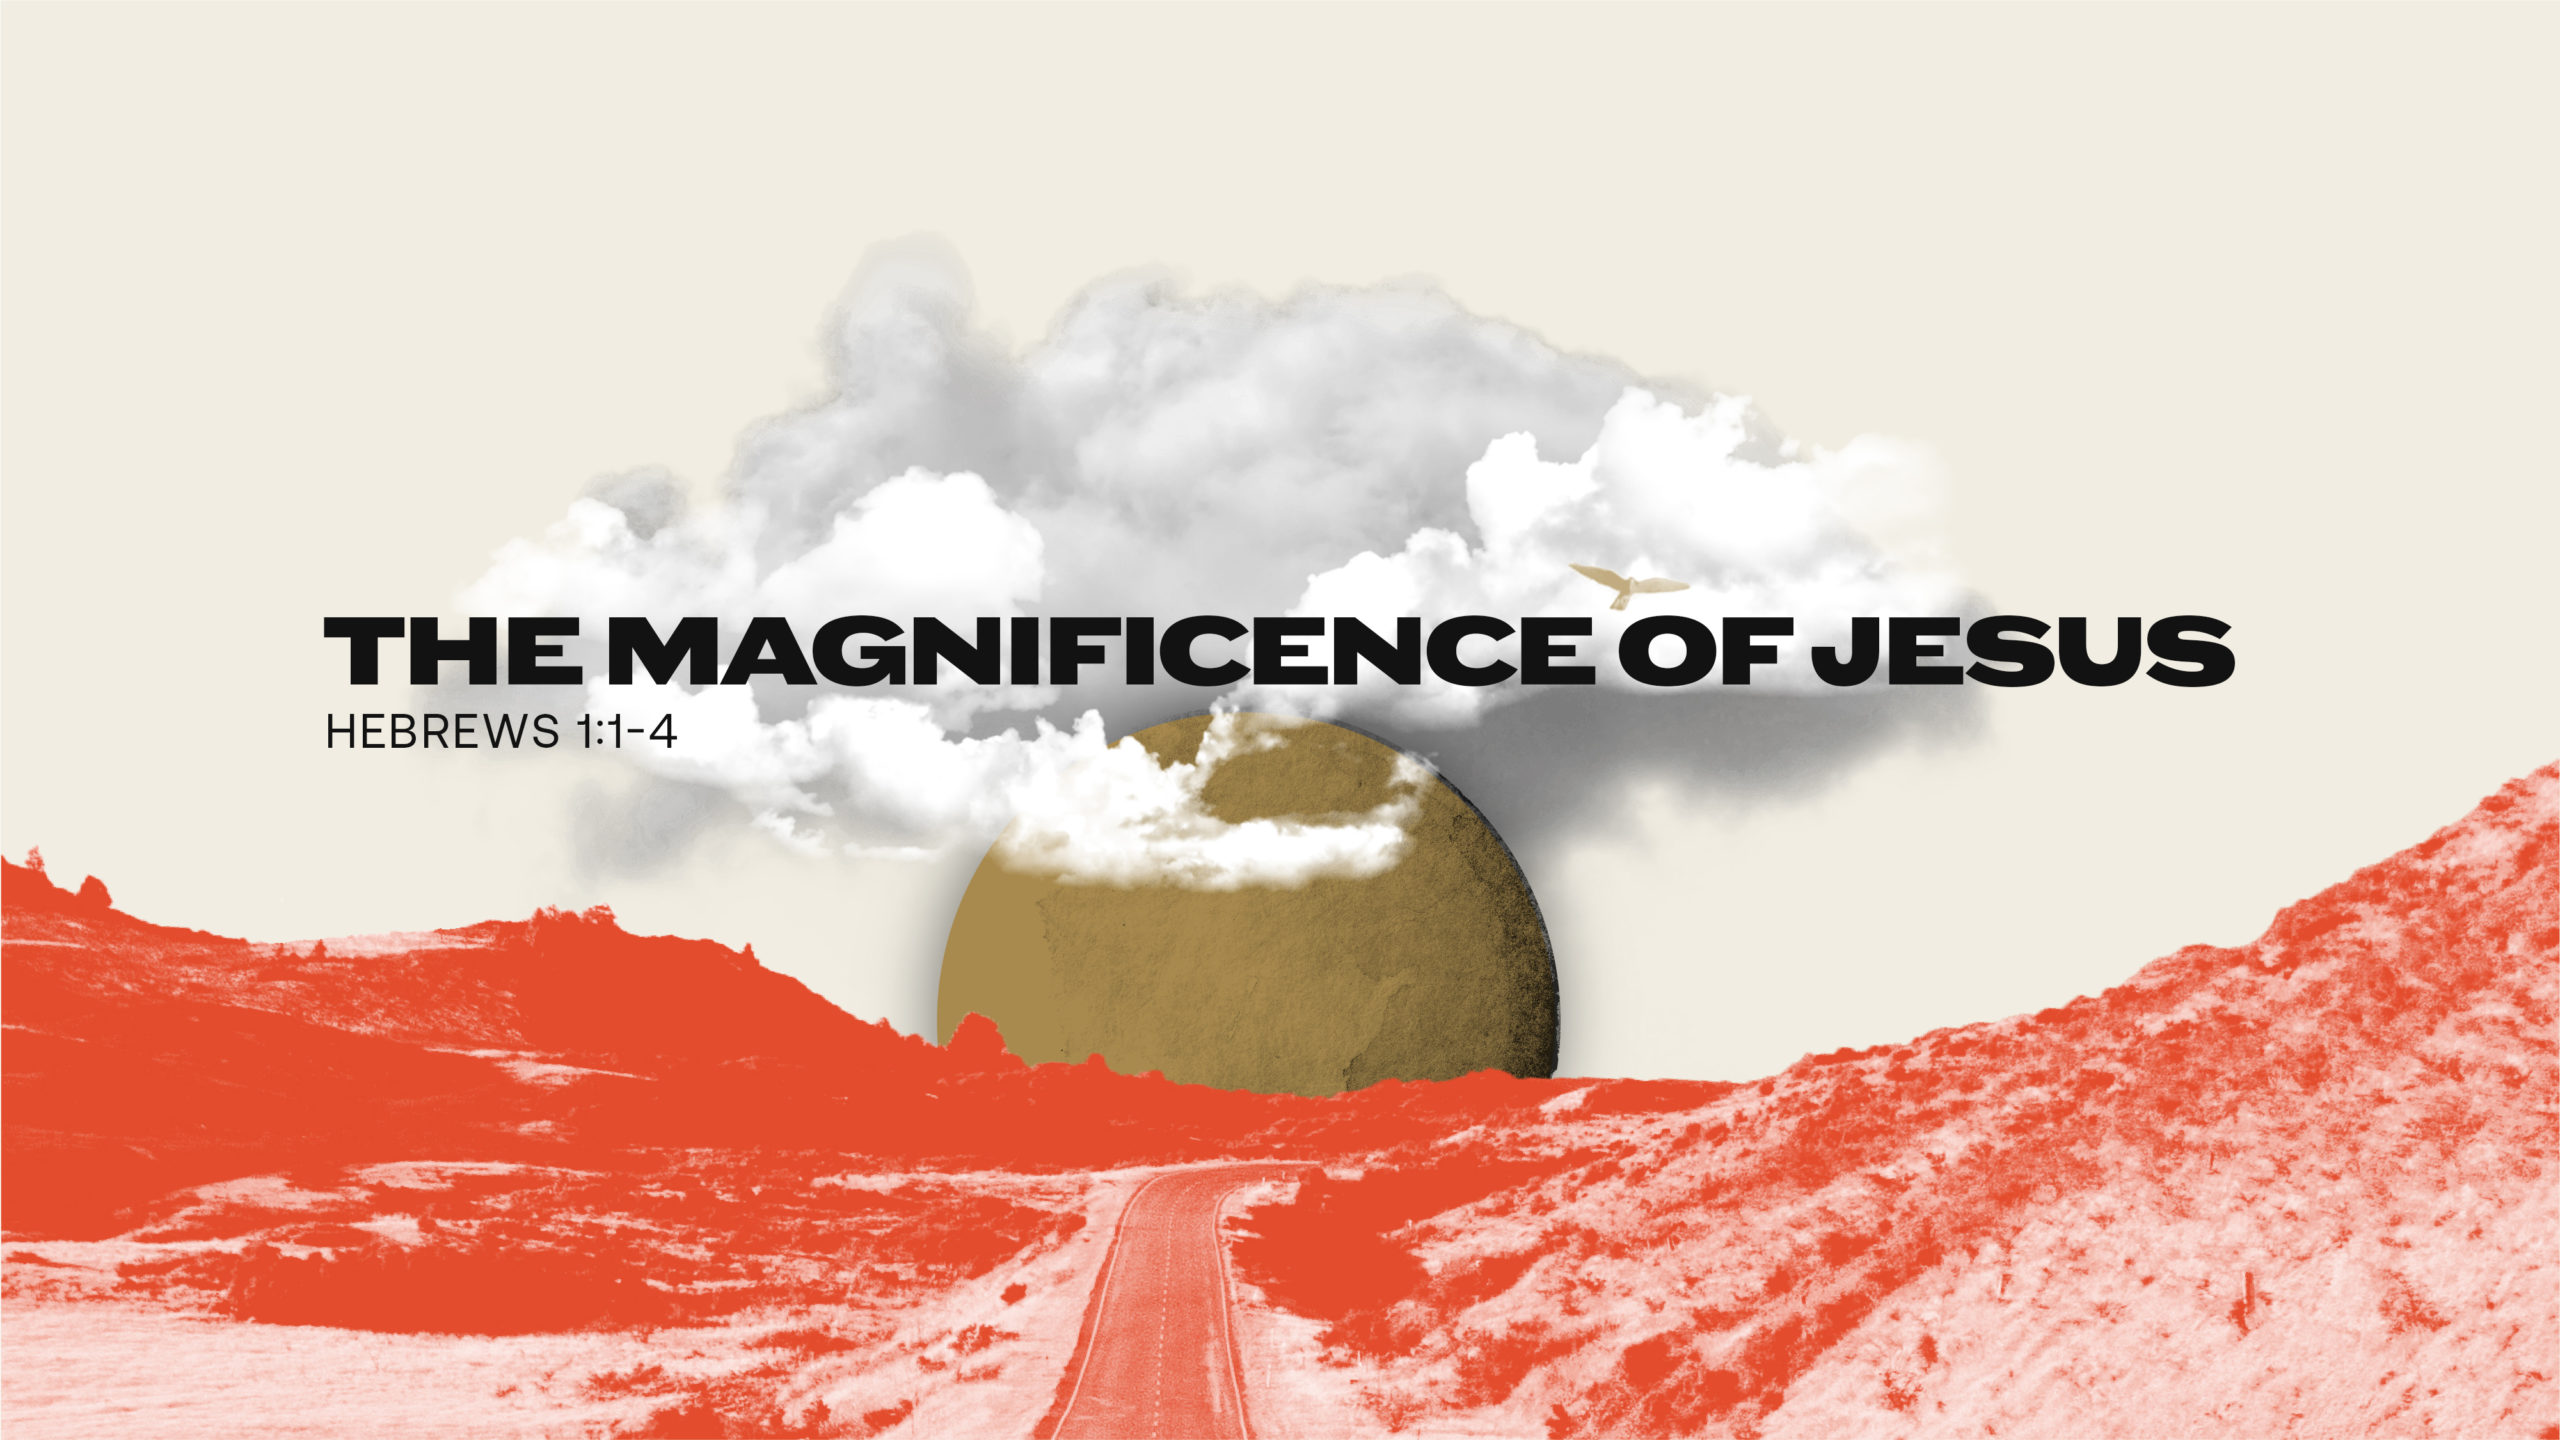 The Magnificence of Jesus